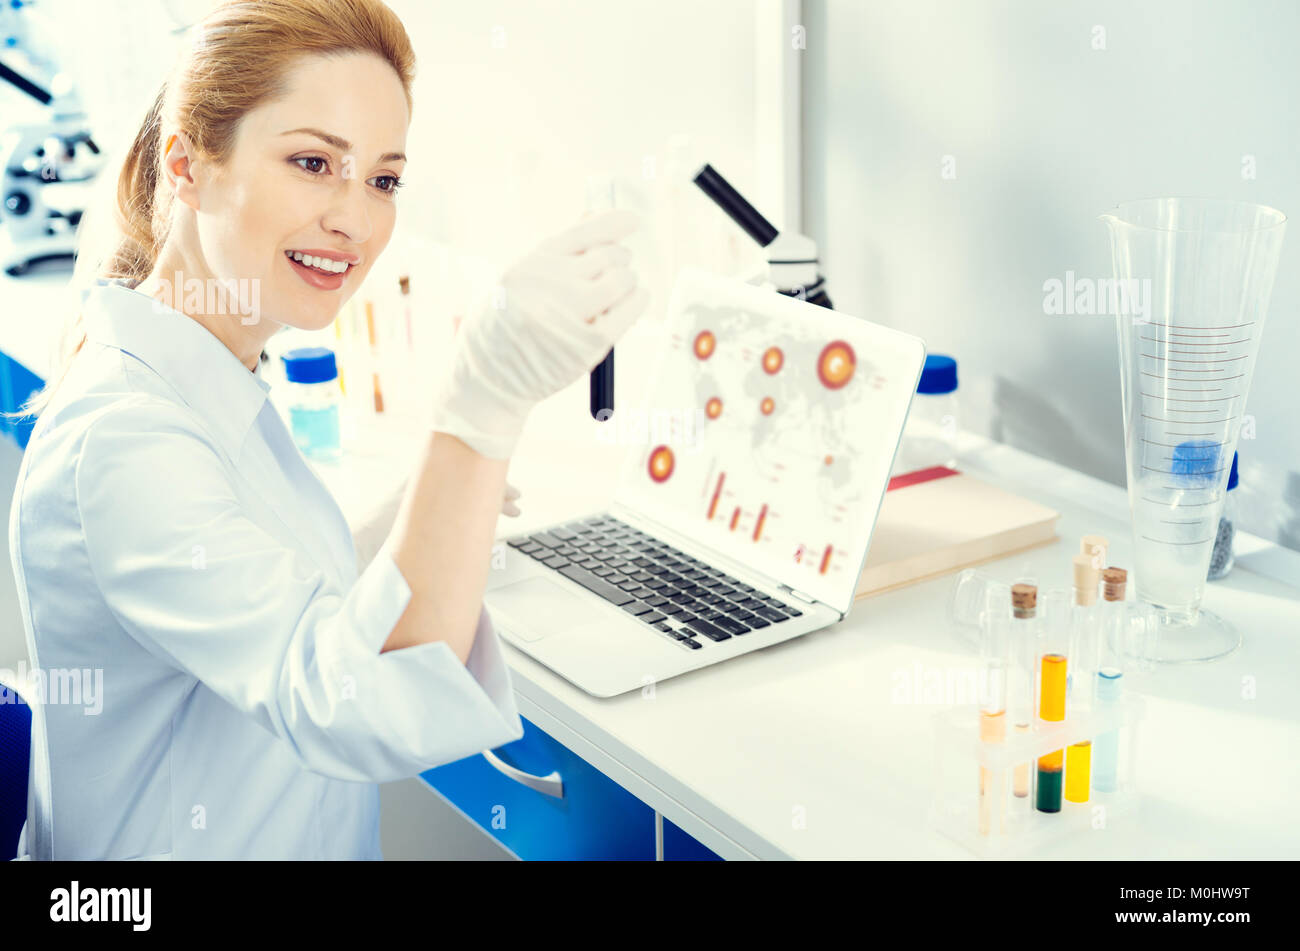 Adult woman analyzing test tube while working in lab - Stock Image